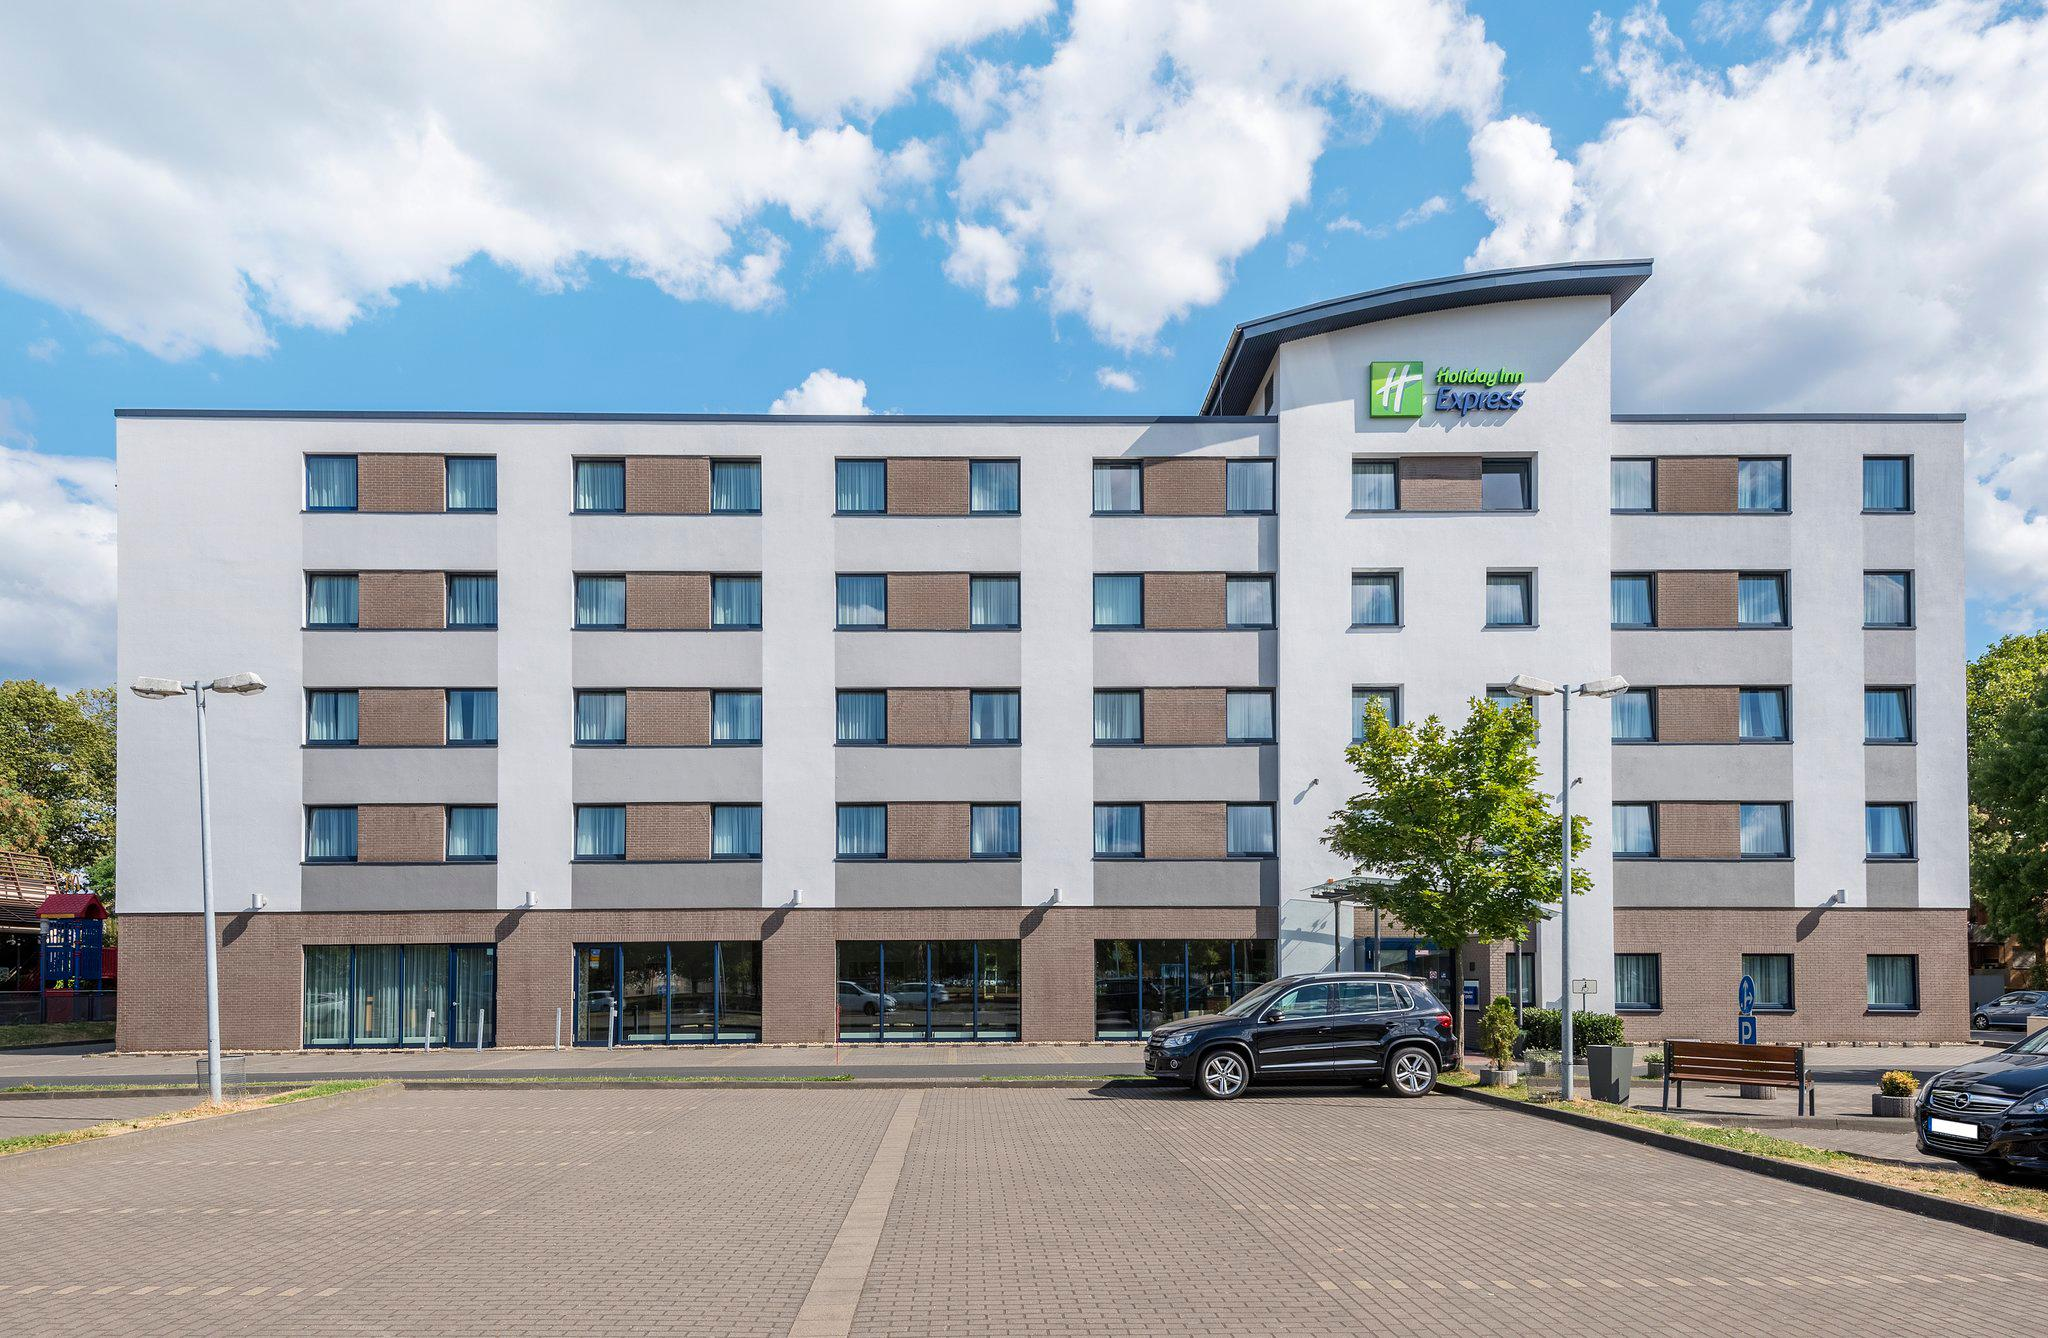 Holiday Inn Express Cologne - Muelheim, Tiefentalstrasse 72 in Cologne